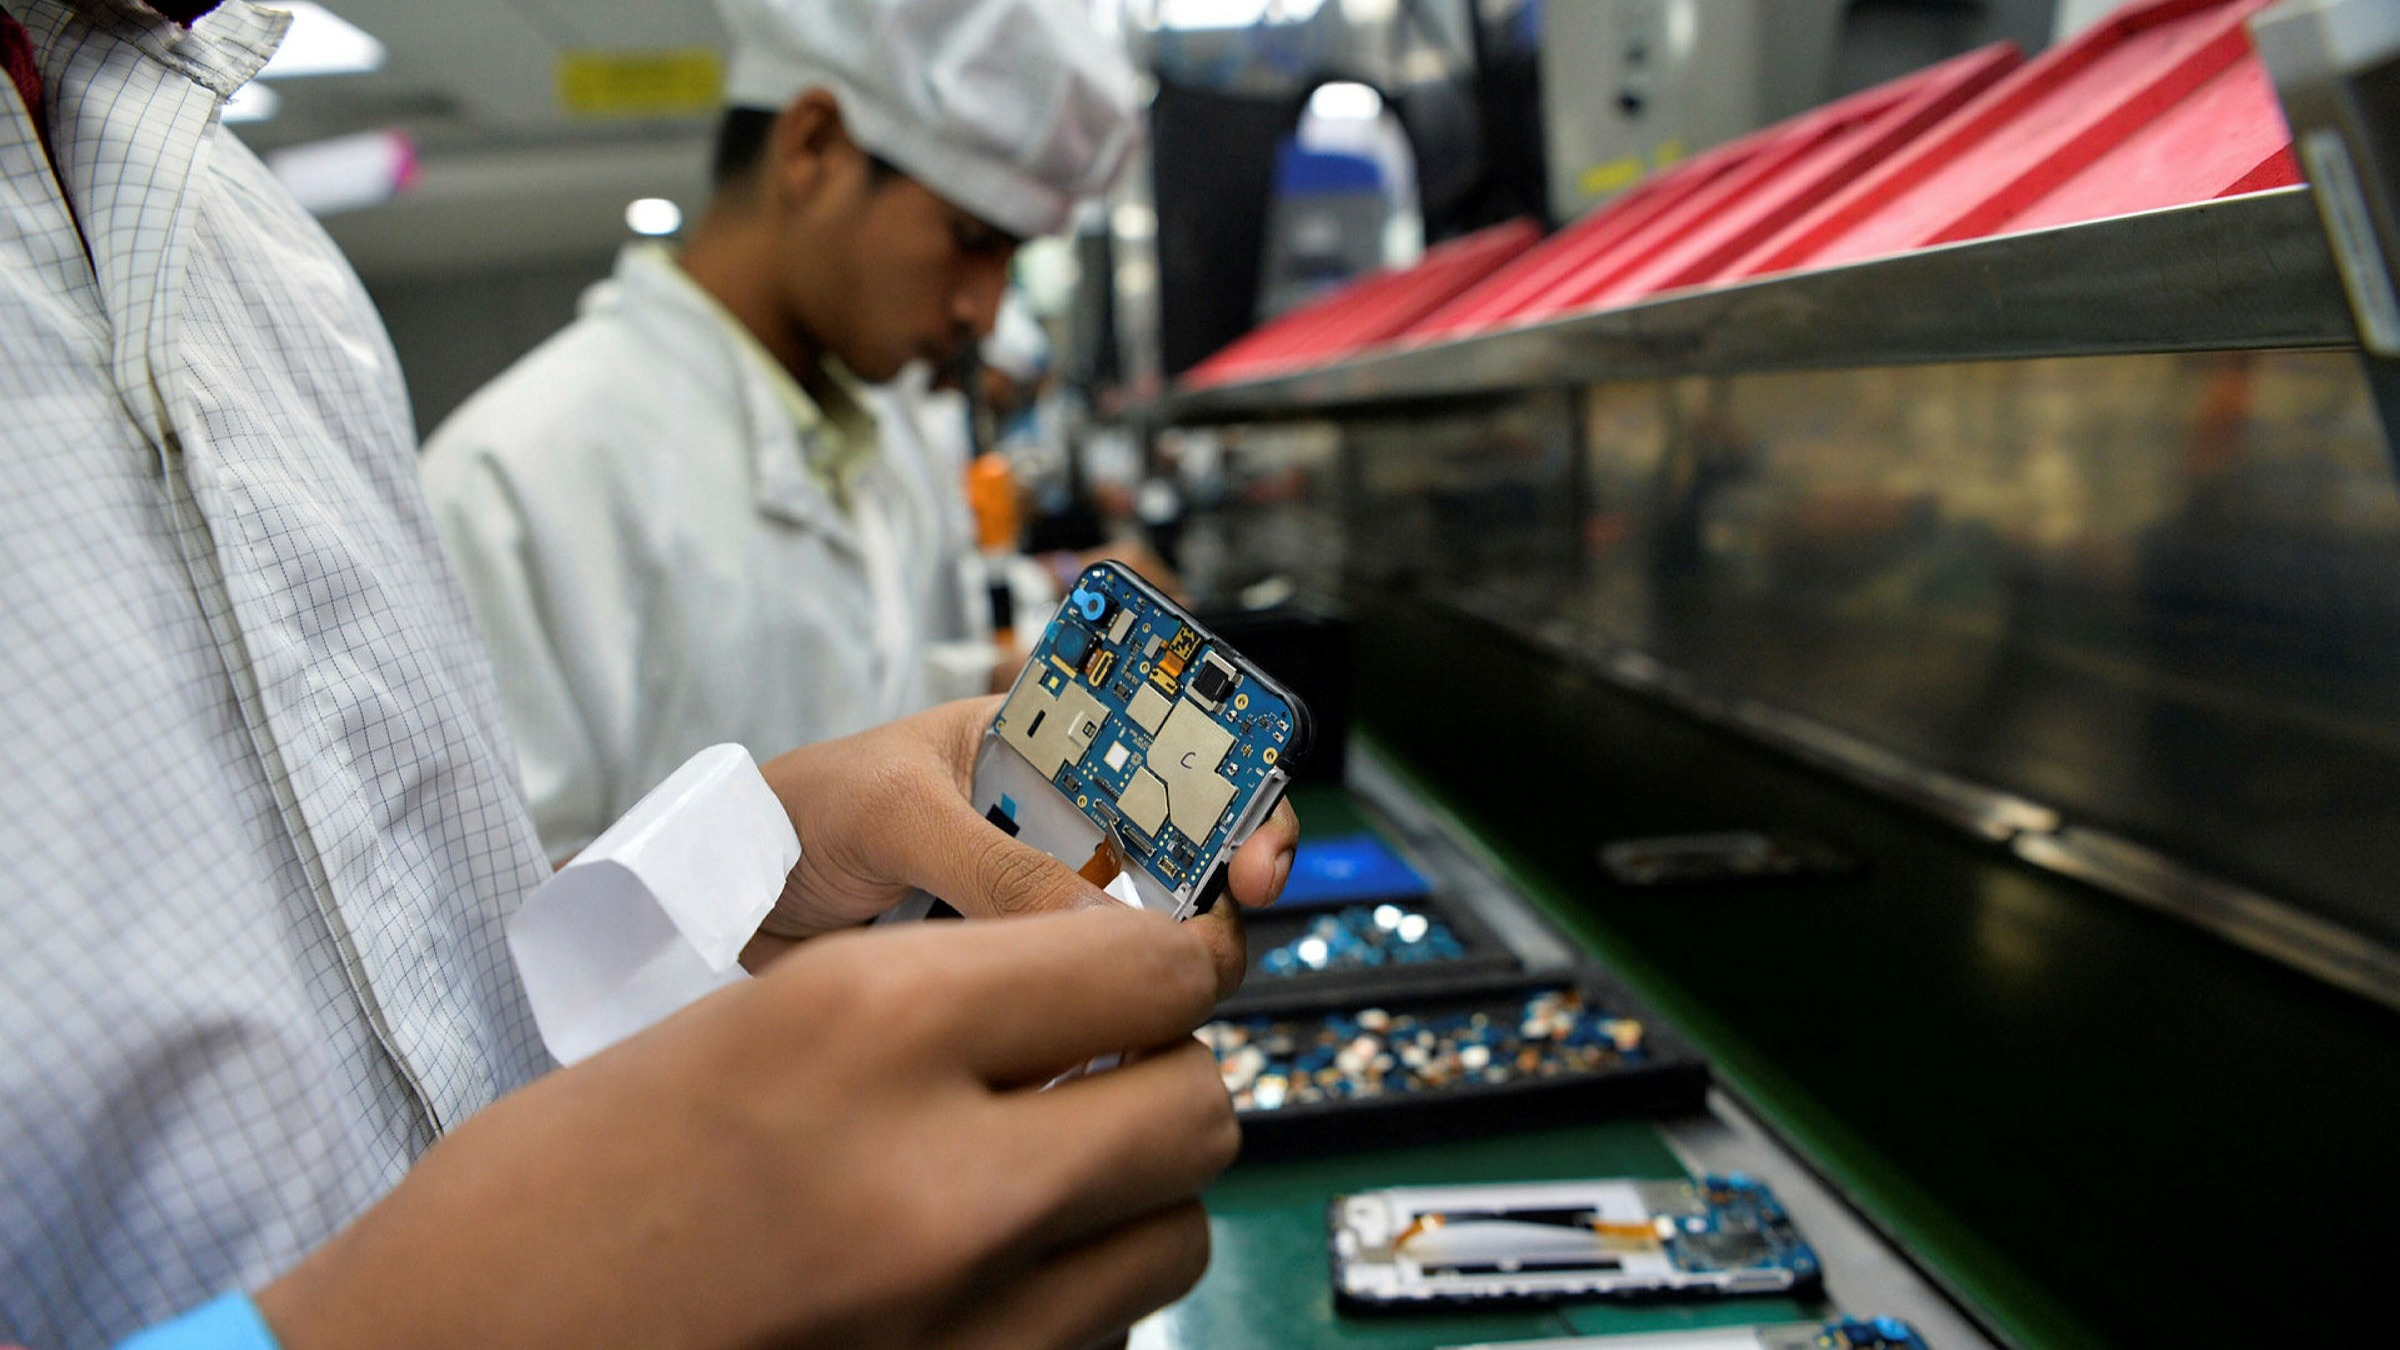 ft.com - Stephanie Findlay in Sriperumbudur - Manufacturers look to India to tap market and diversify supply chains